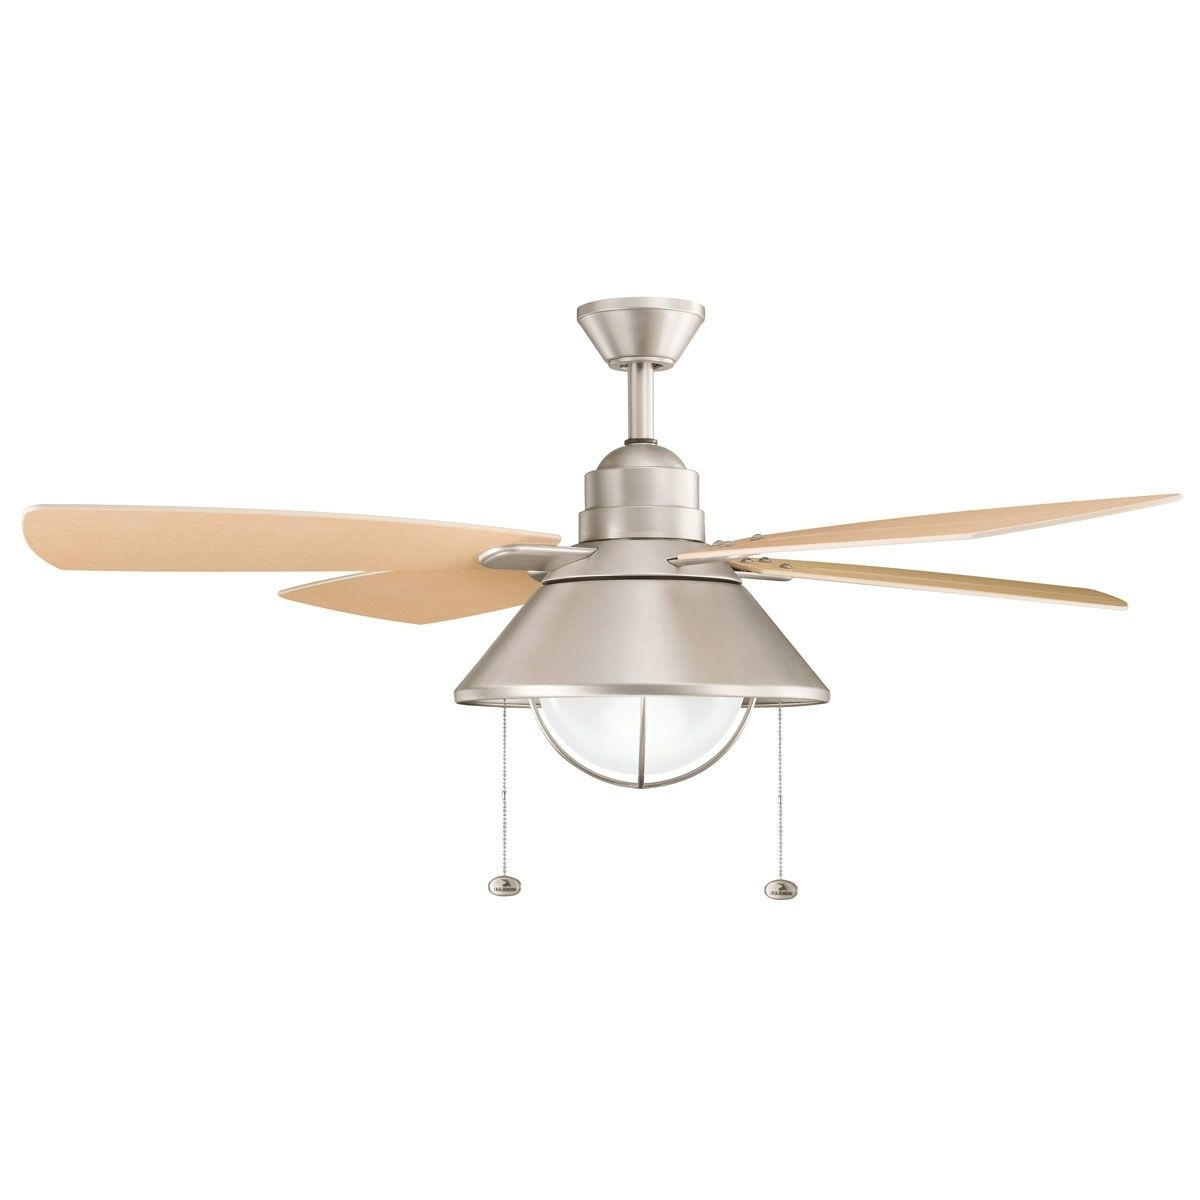 Metal Outdoor Ceiling Fans With Light For 2018 Kichler Fans Seaside Ceiling Fan In Brushed Nickel (View 17 of 20)